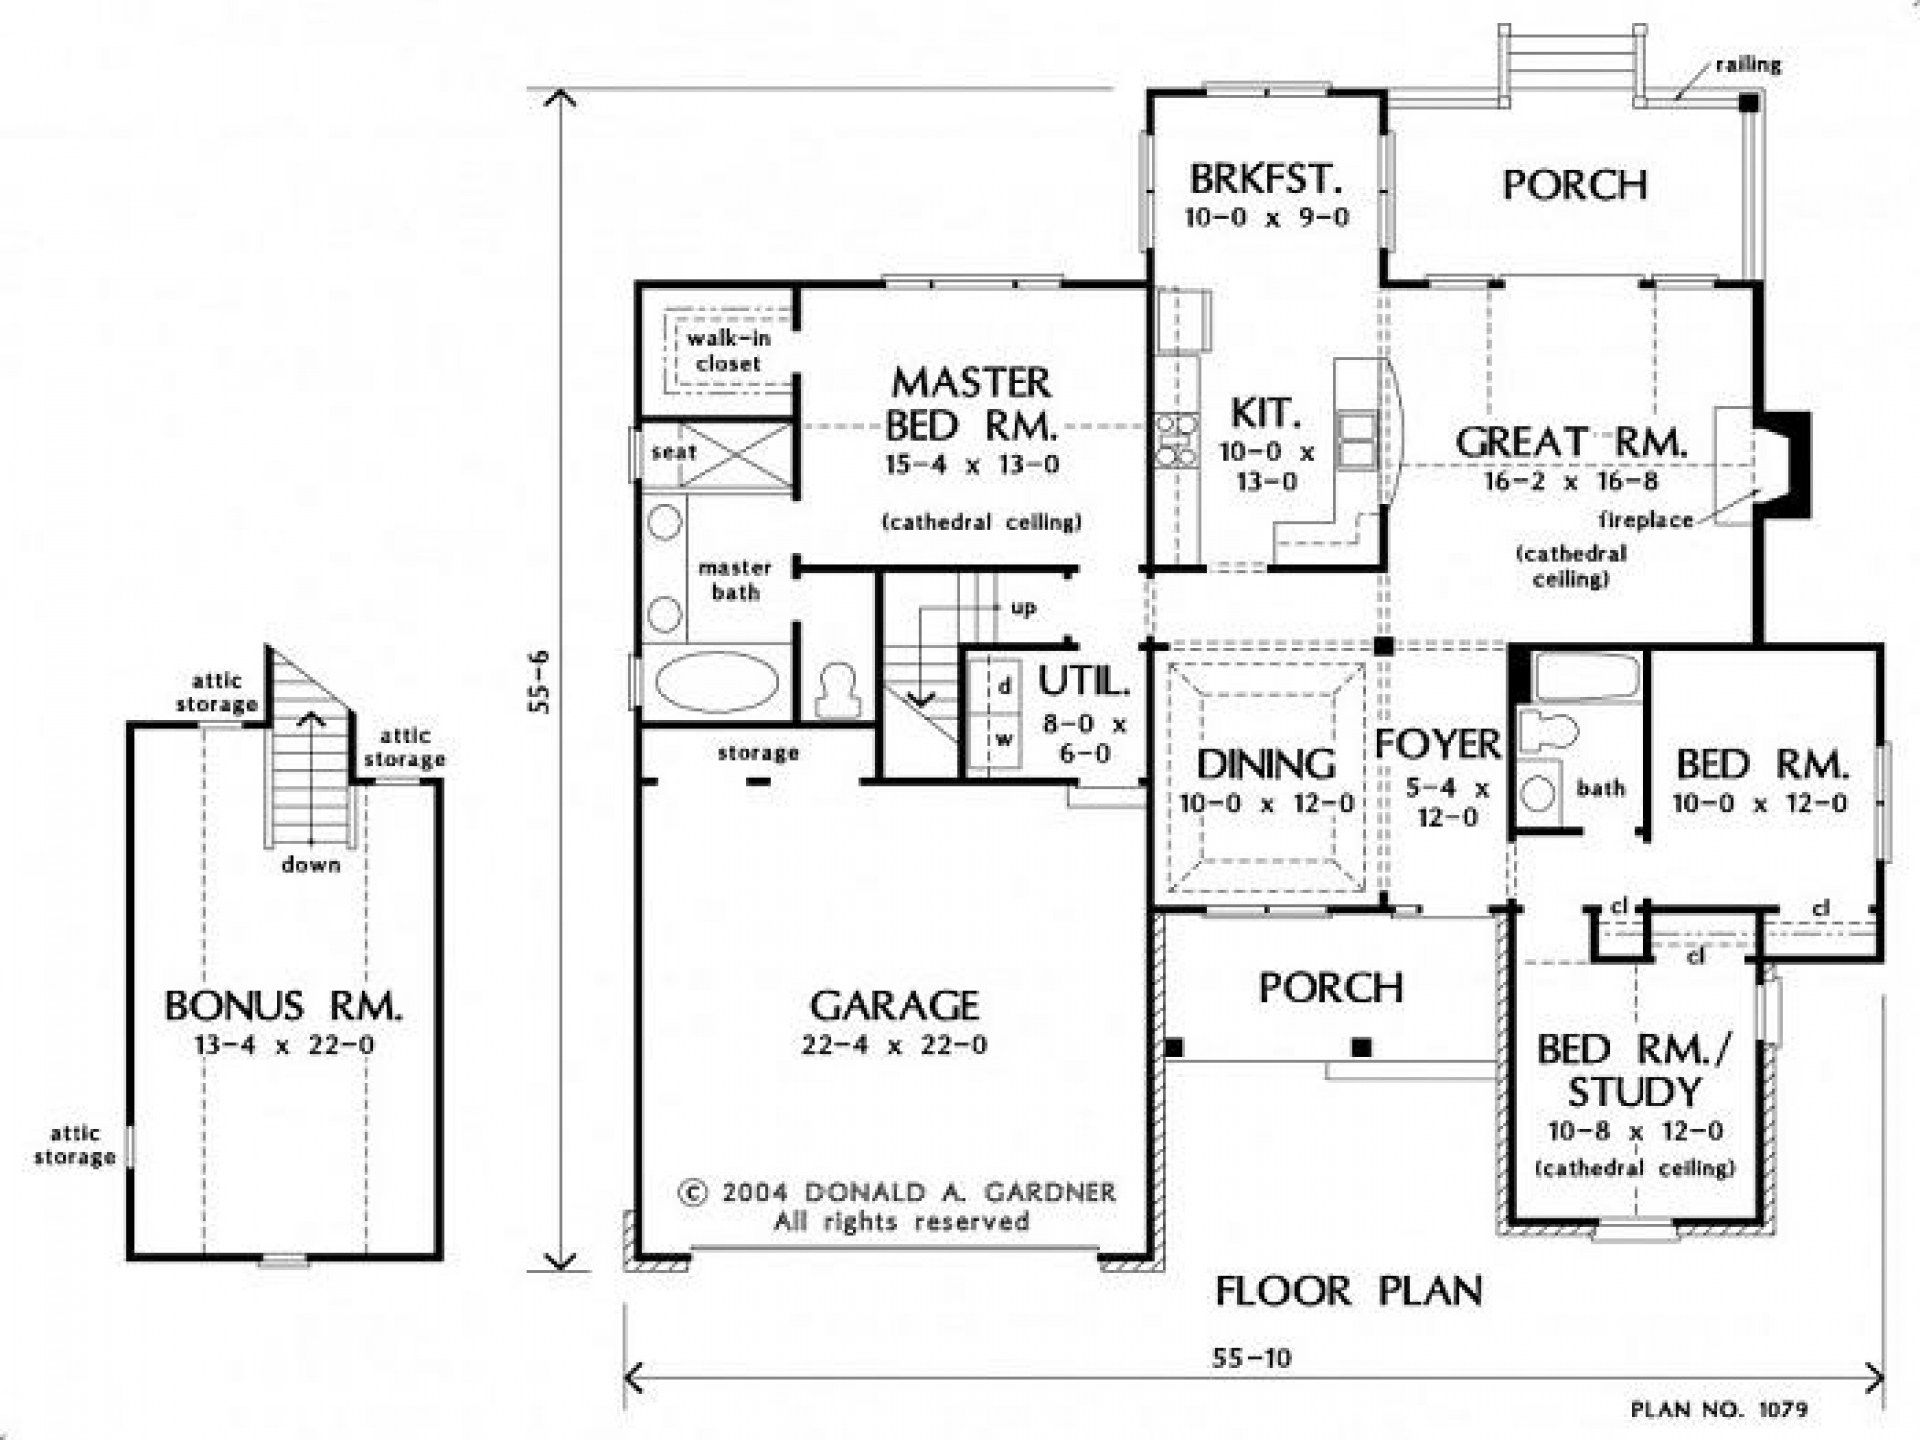 Plans online tritmonk pictures gallery home interior design idea home floor plans home interior design